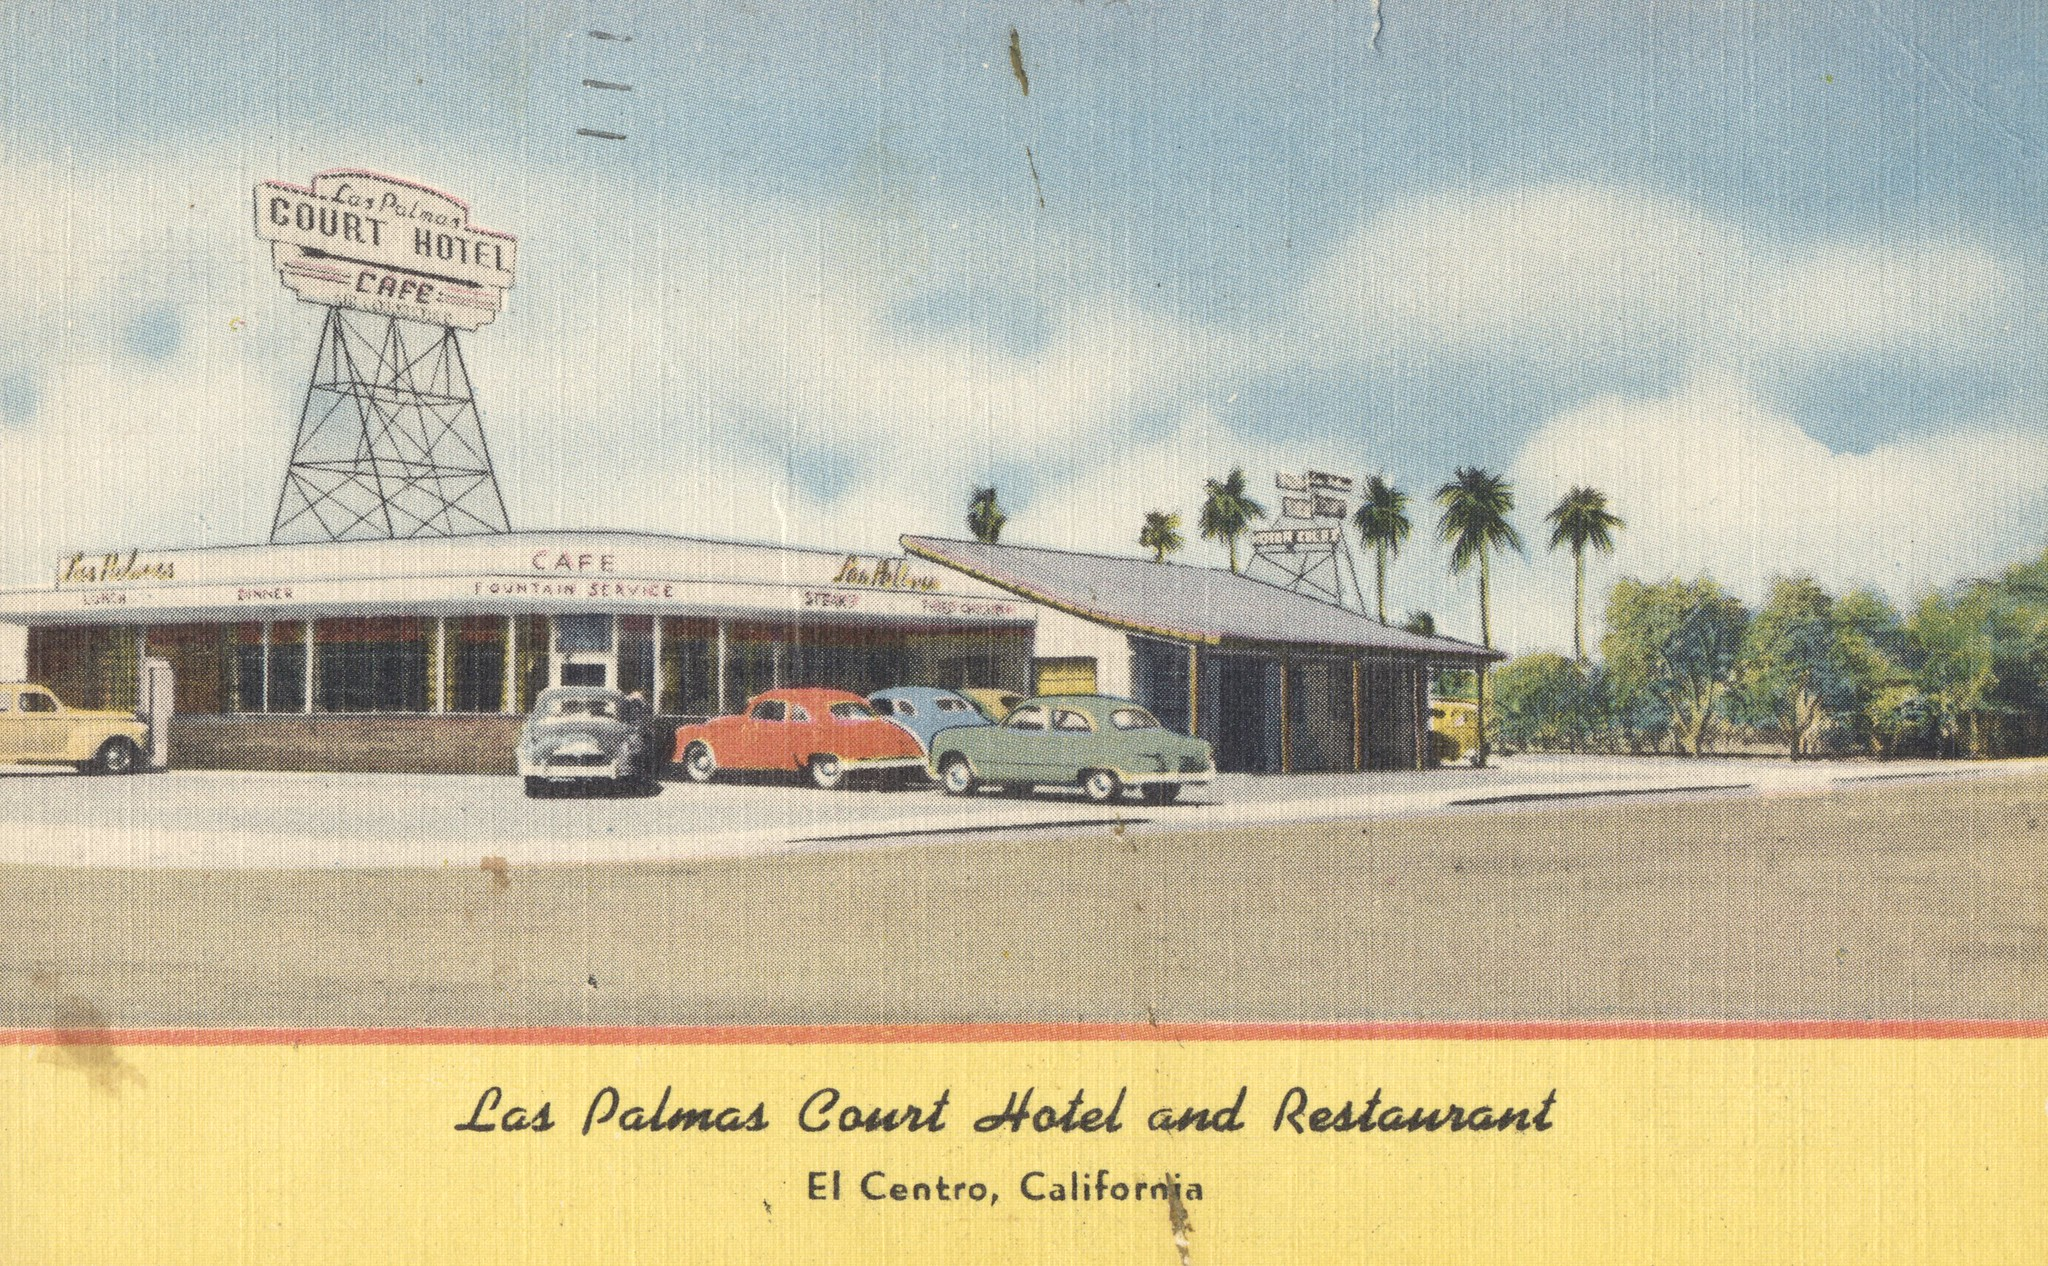 Las Palmas Court Hotel and Restaurant - El Centro, California